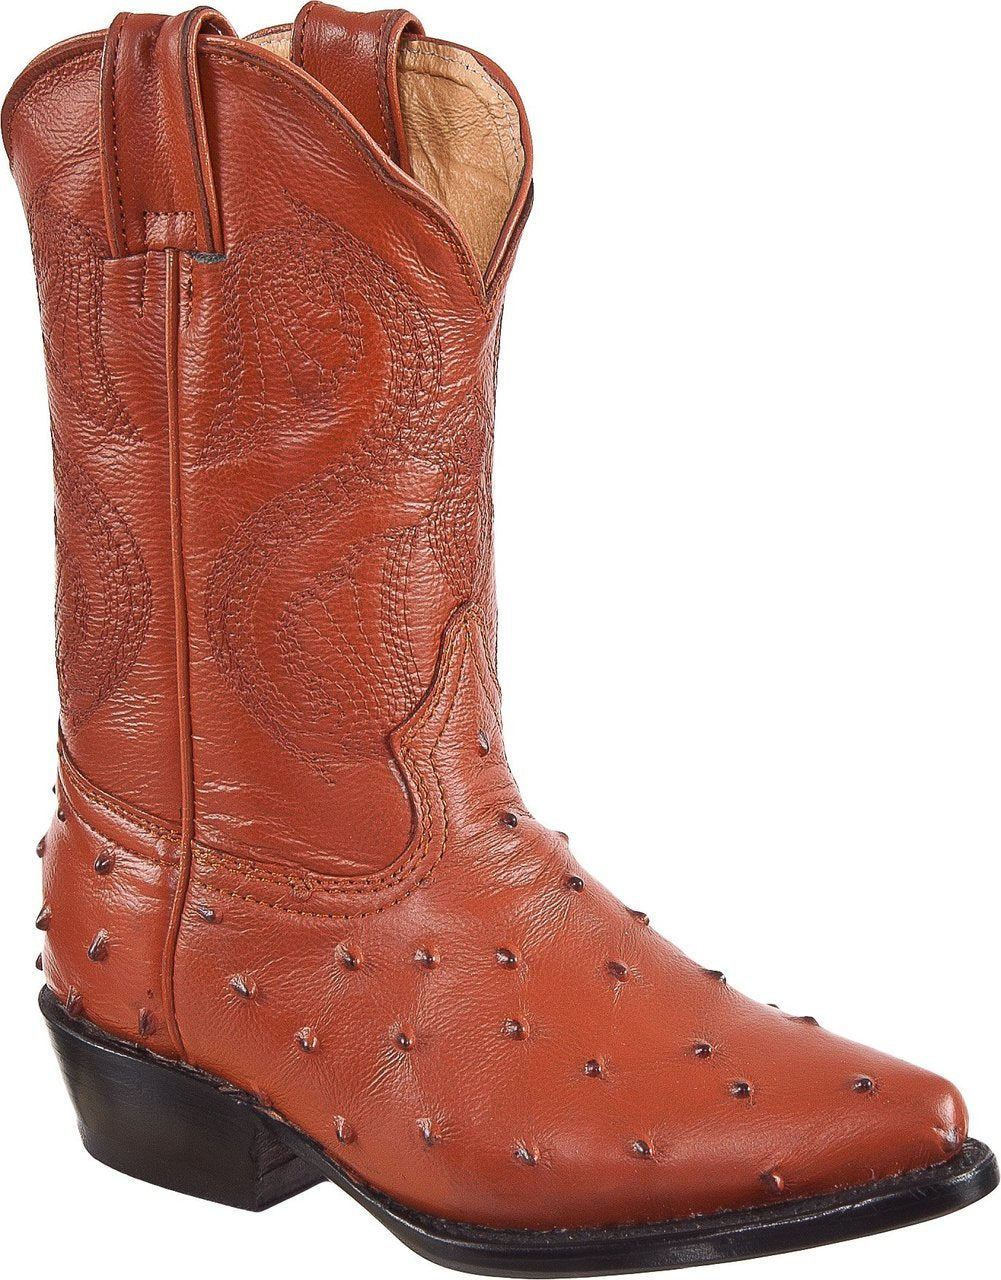 DIEGO'S Kids' Cognac Ostrich Print Boots - Pointed Toe